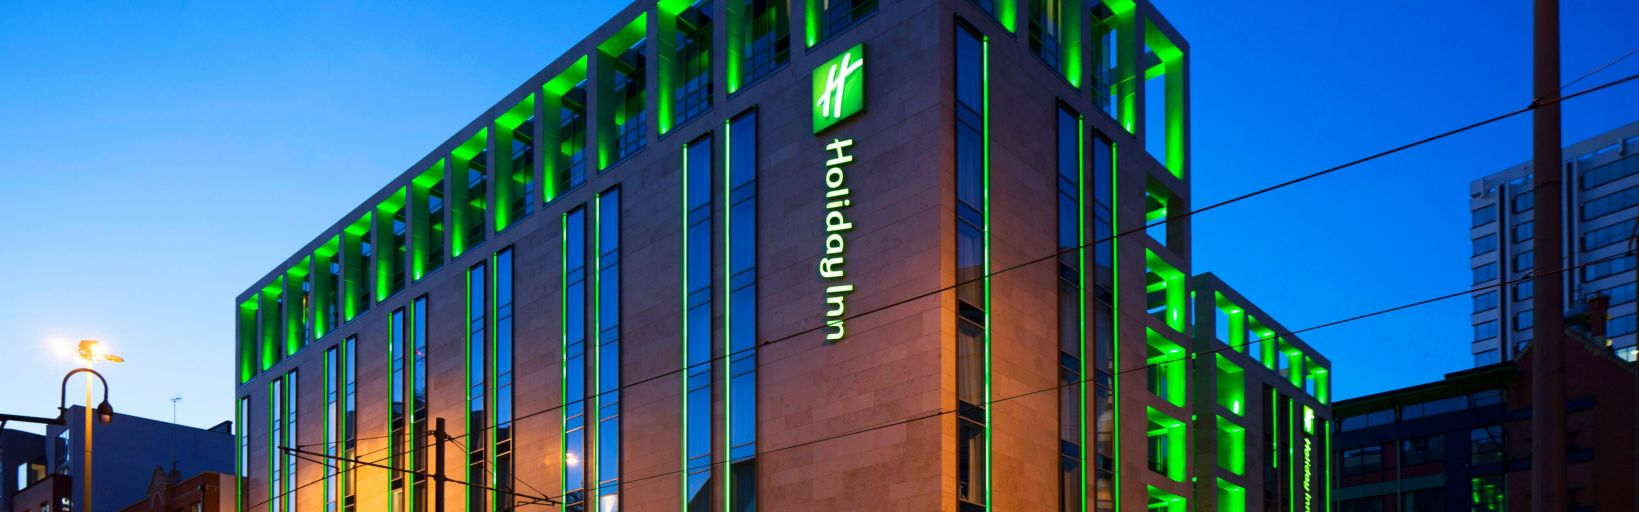 Holiday Inn Manchester City Centre Hotel By Ihg